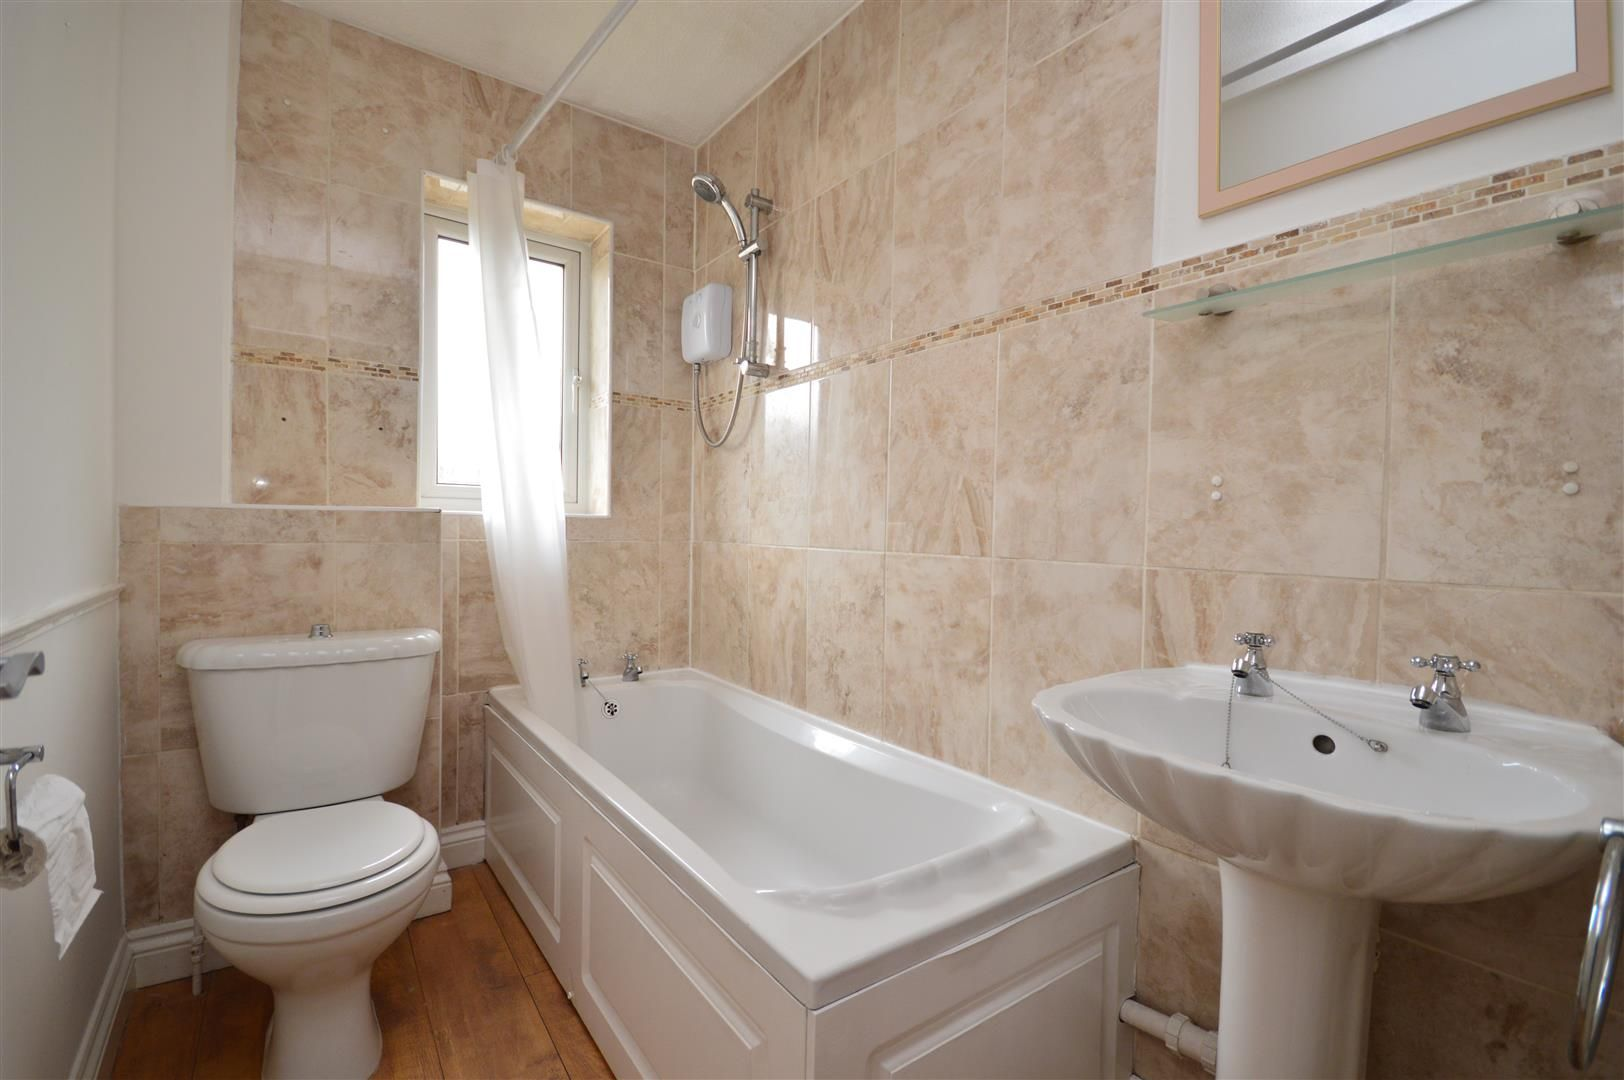 2 bed end-of-terrace for sale in Belmont  - Property Image 8